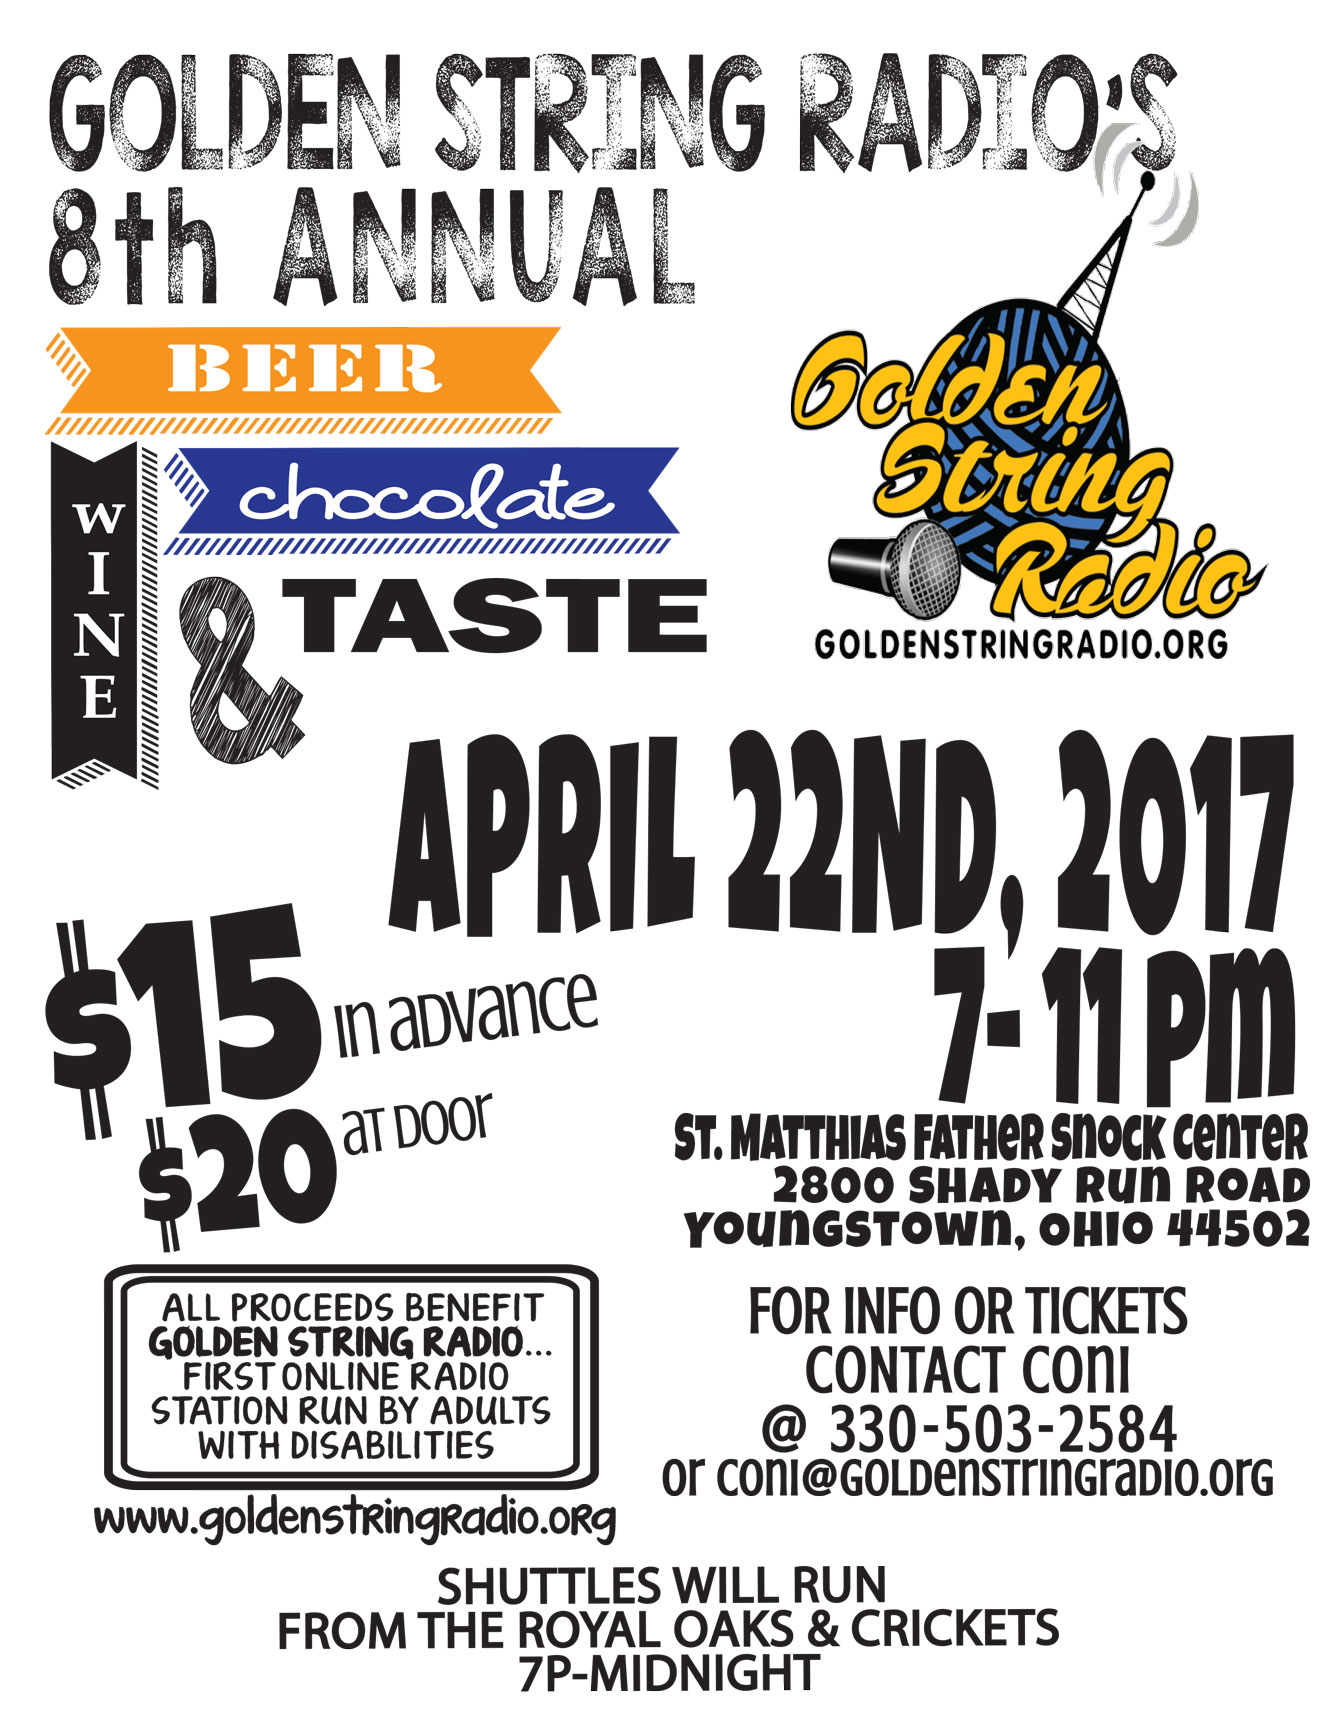 Golden String Radio's 8th Annual Beer, Wine & Chocolate Taste